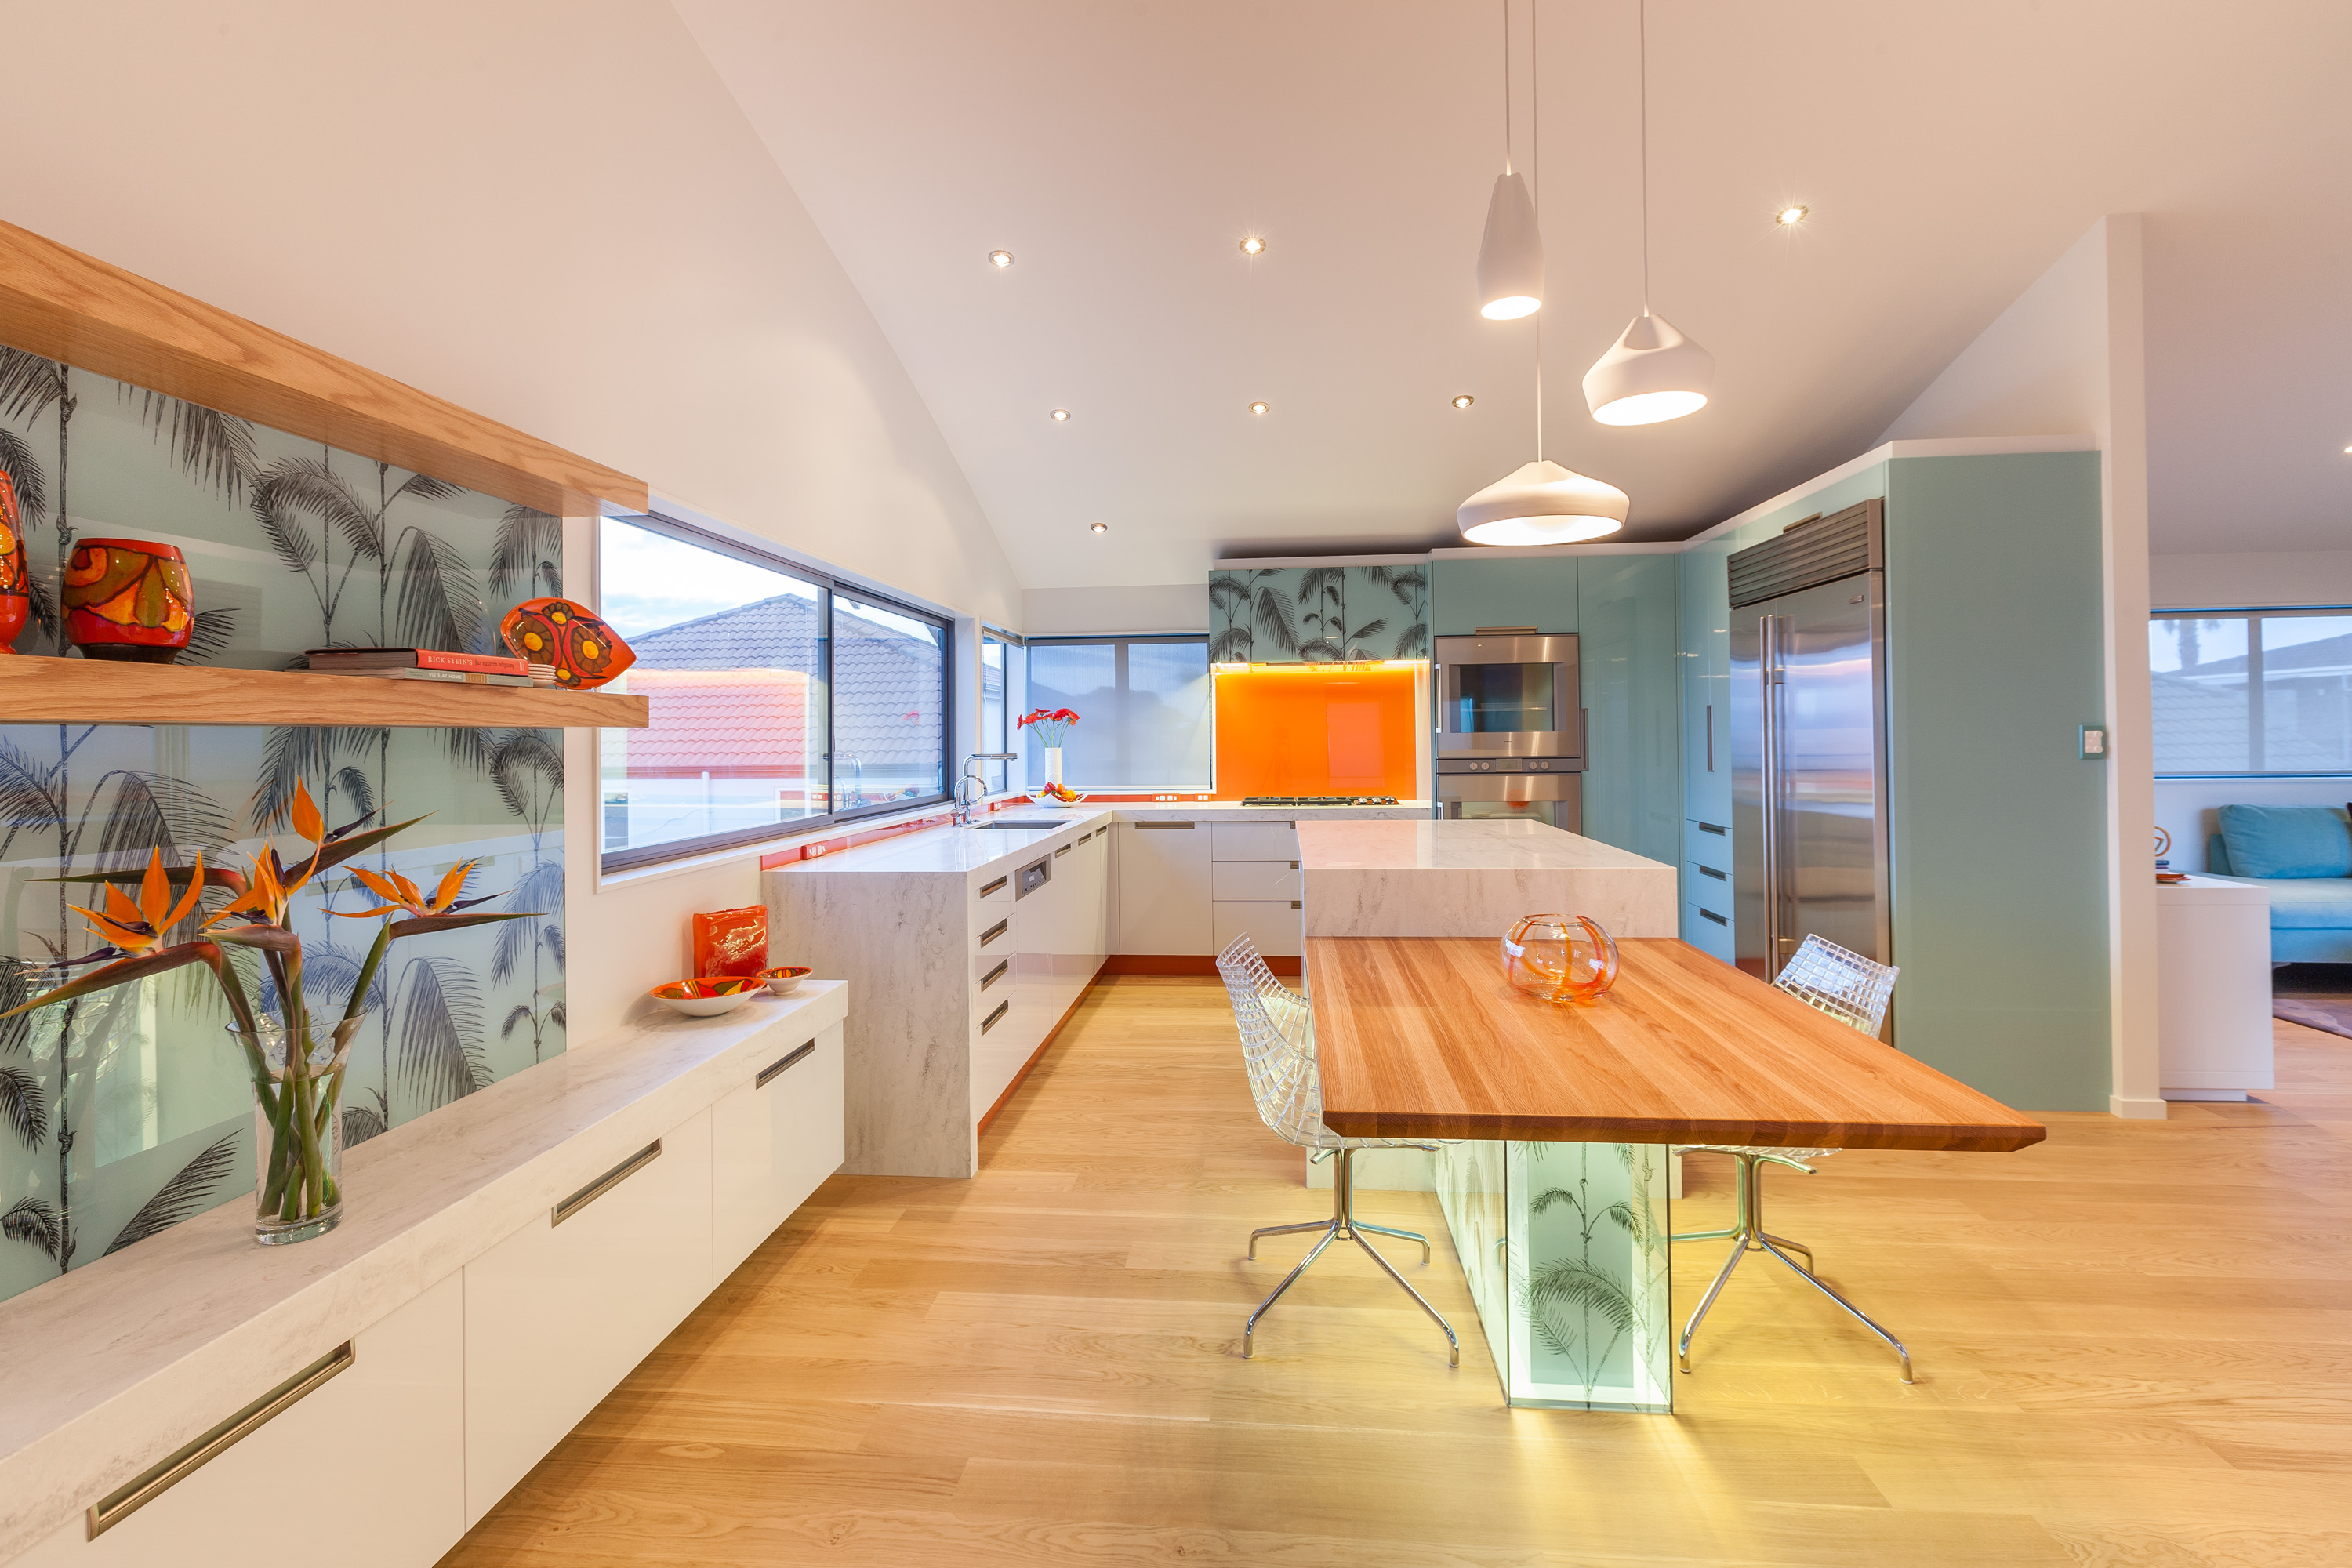 Top 5 Kitchen Design Trends for 2021